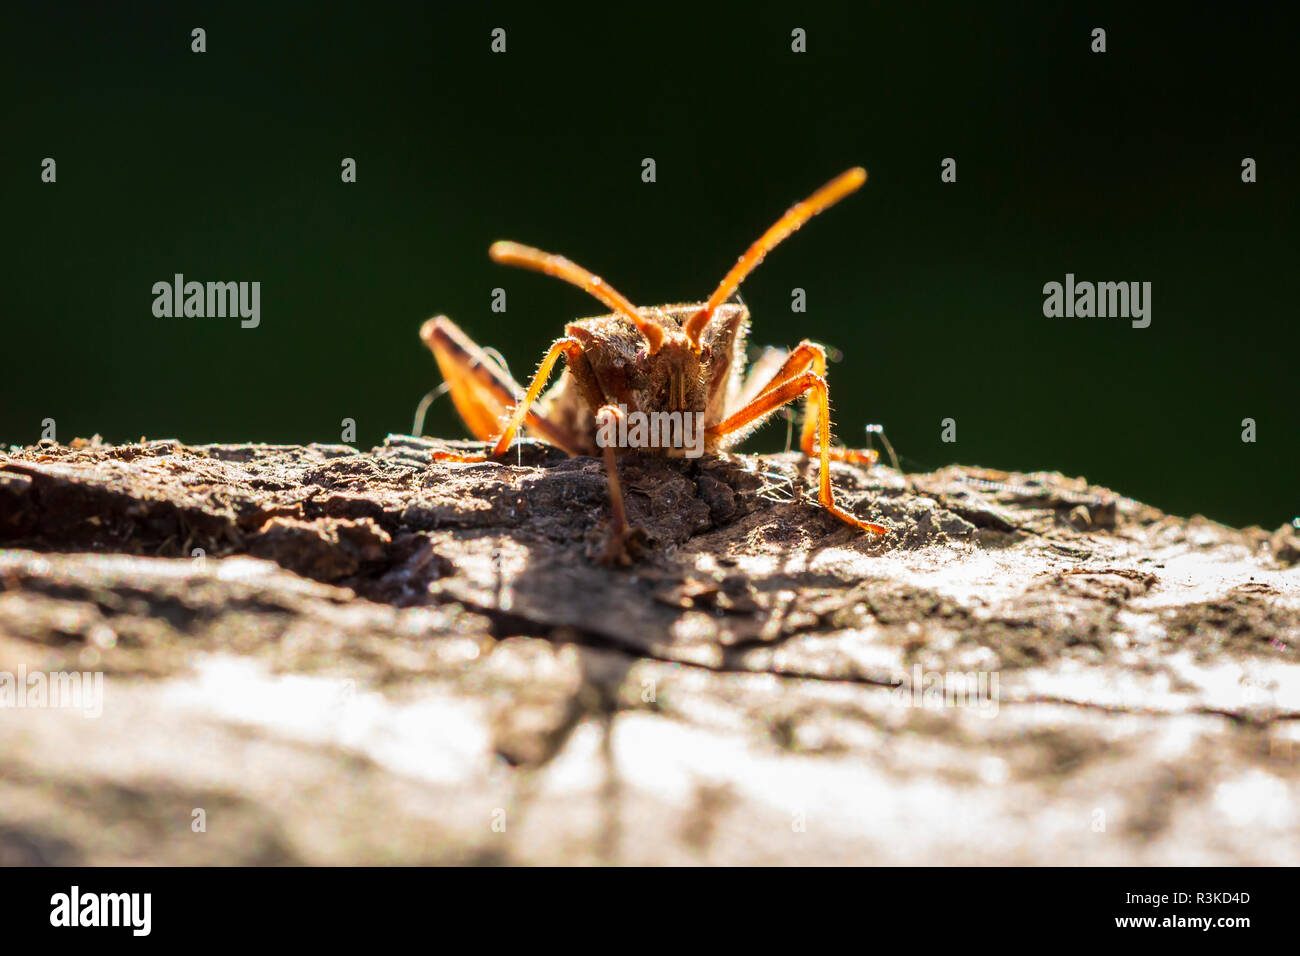 Western conifer seed bug insect, Leptoglossus occidentalis, or WCSB, crawling on wood in bright sunlight - Stock Image